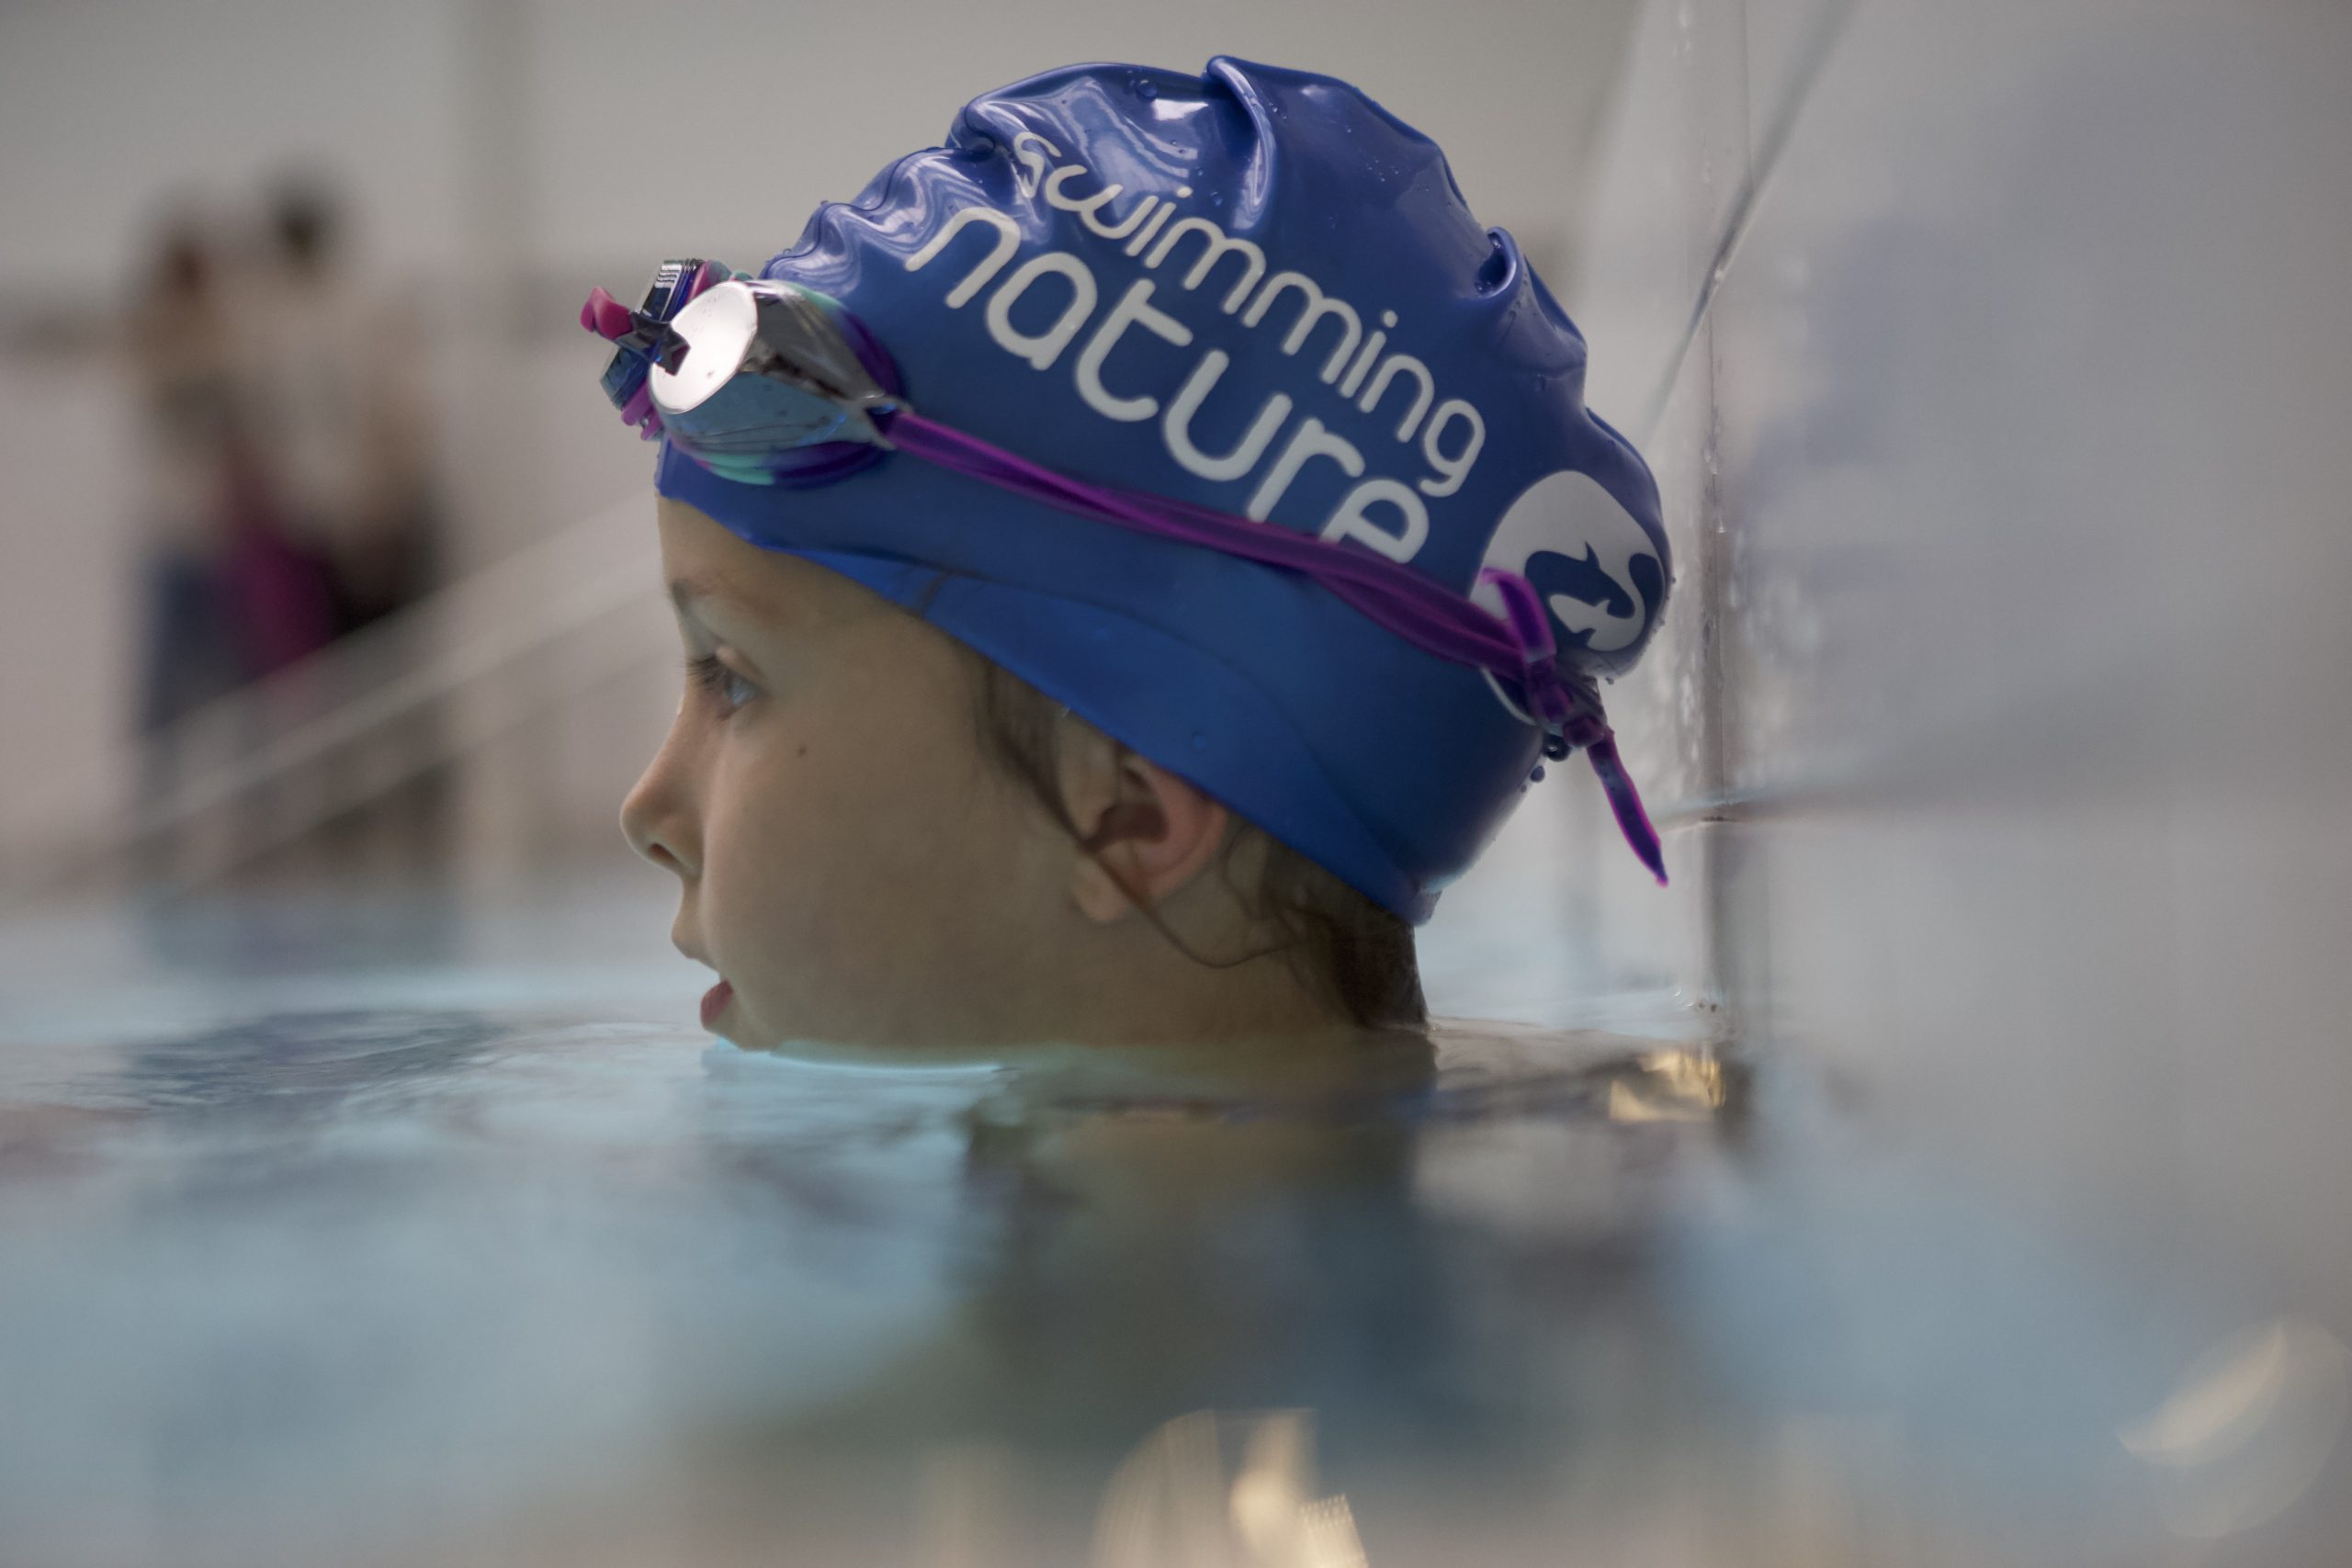 HOW SWIMMING USES THE BODY AND MIND TO AIDE SELF-CONFIDENCE